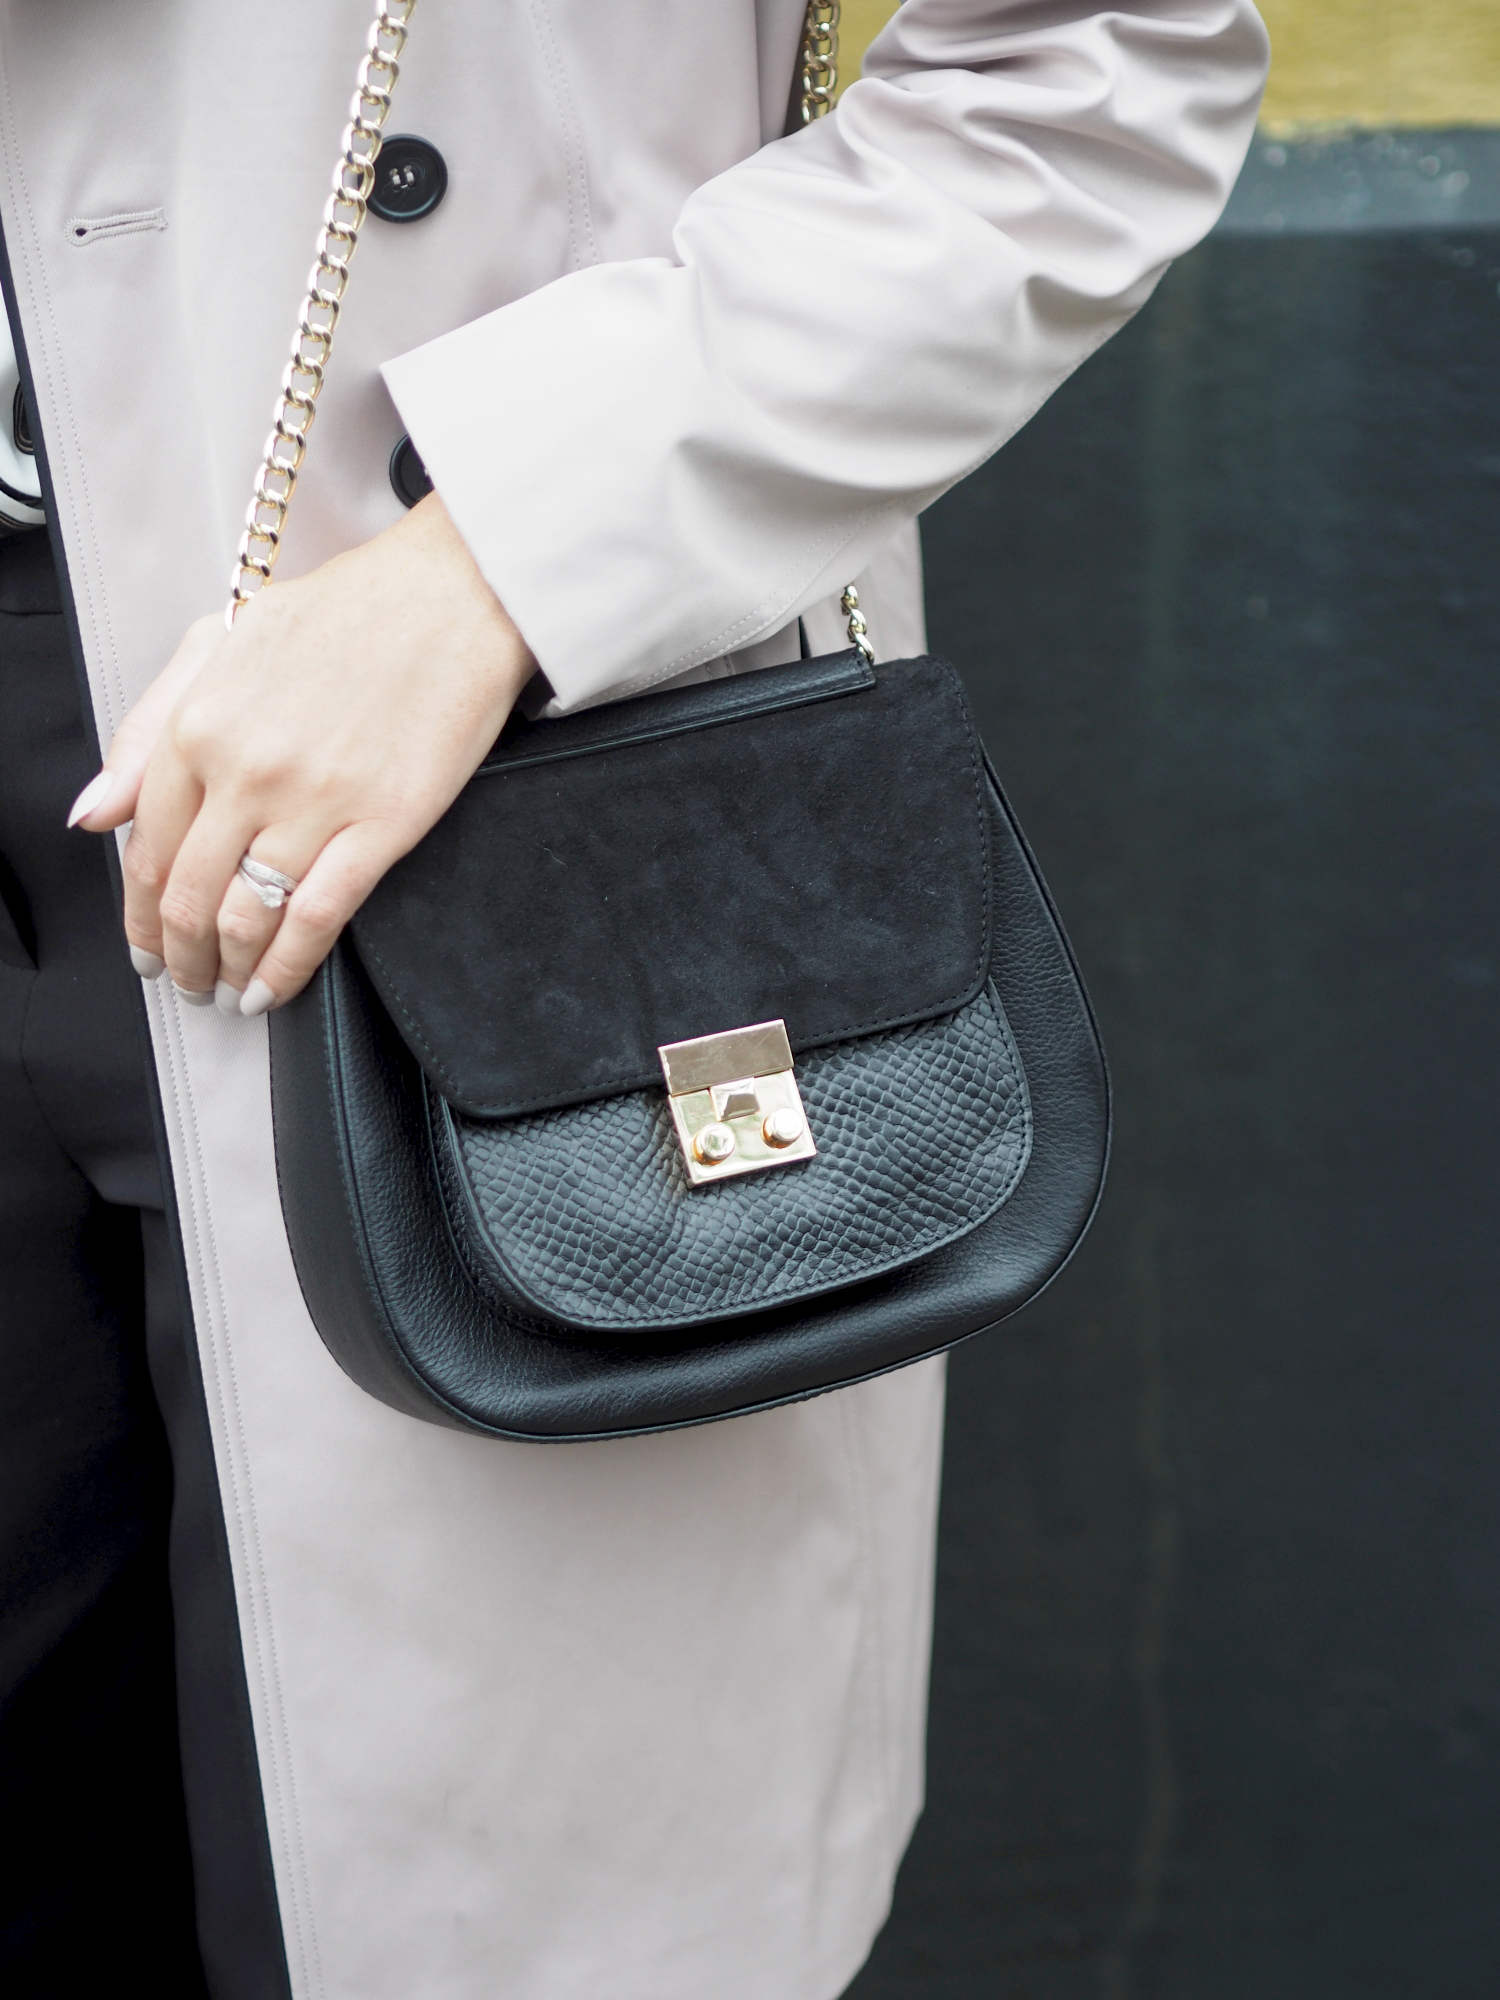 Jacques vert bag collection